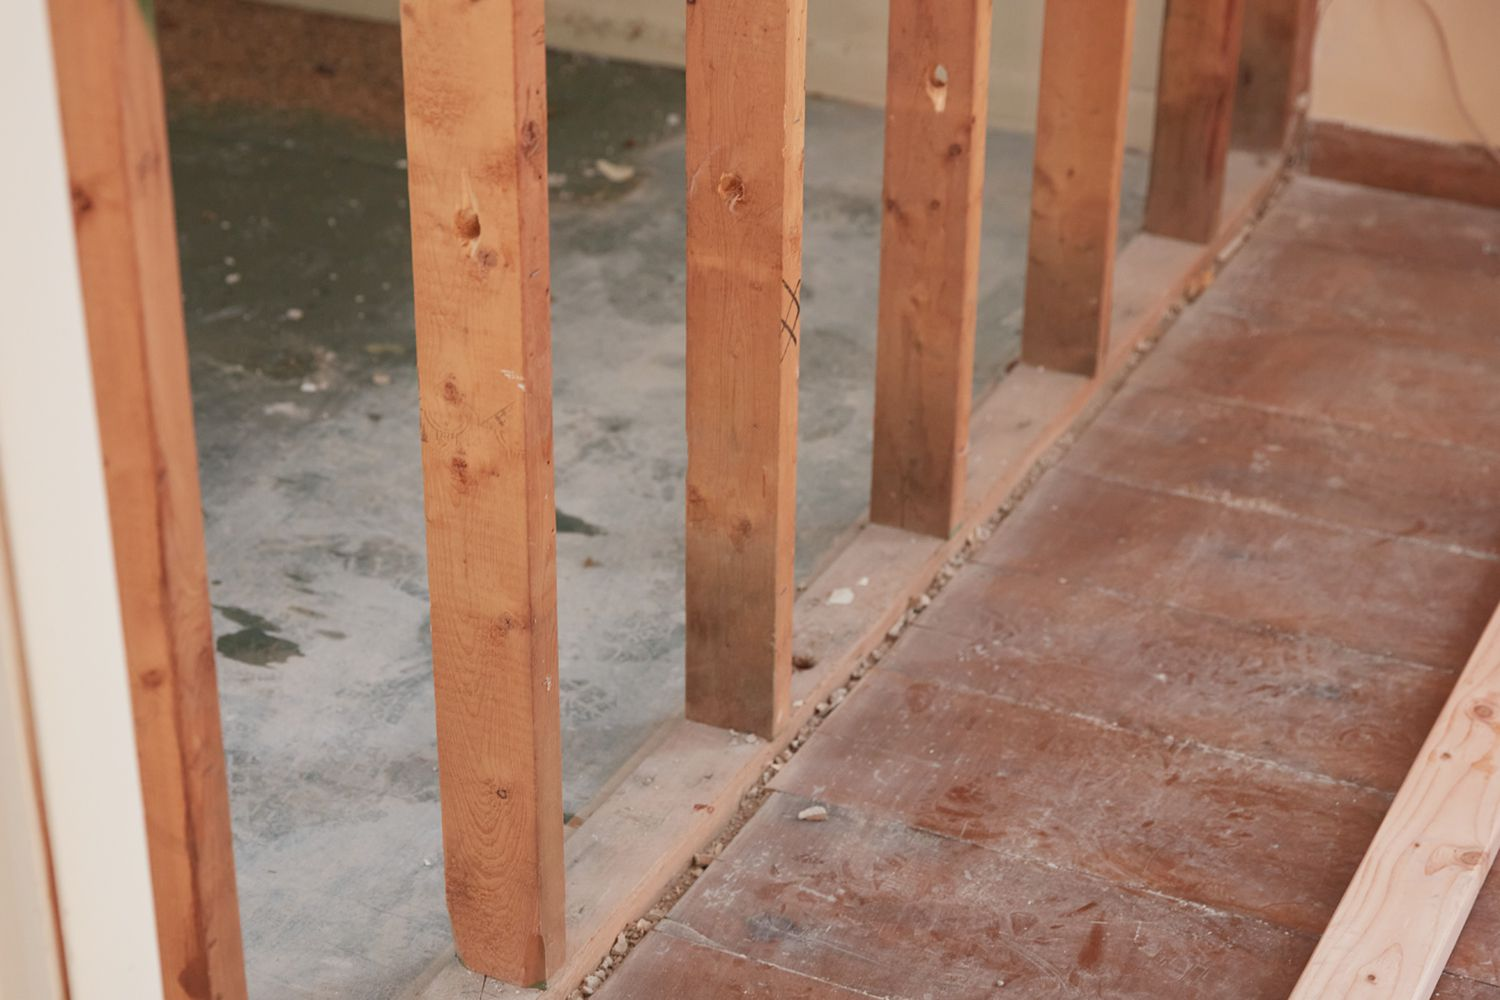 Studs at bottom of wooden support beams